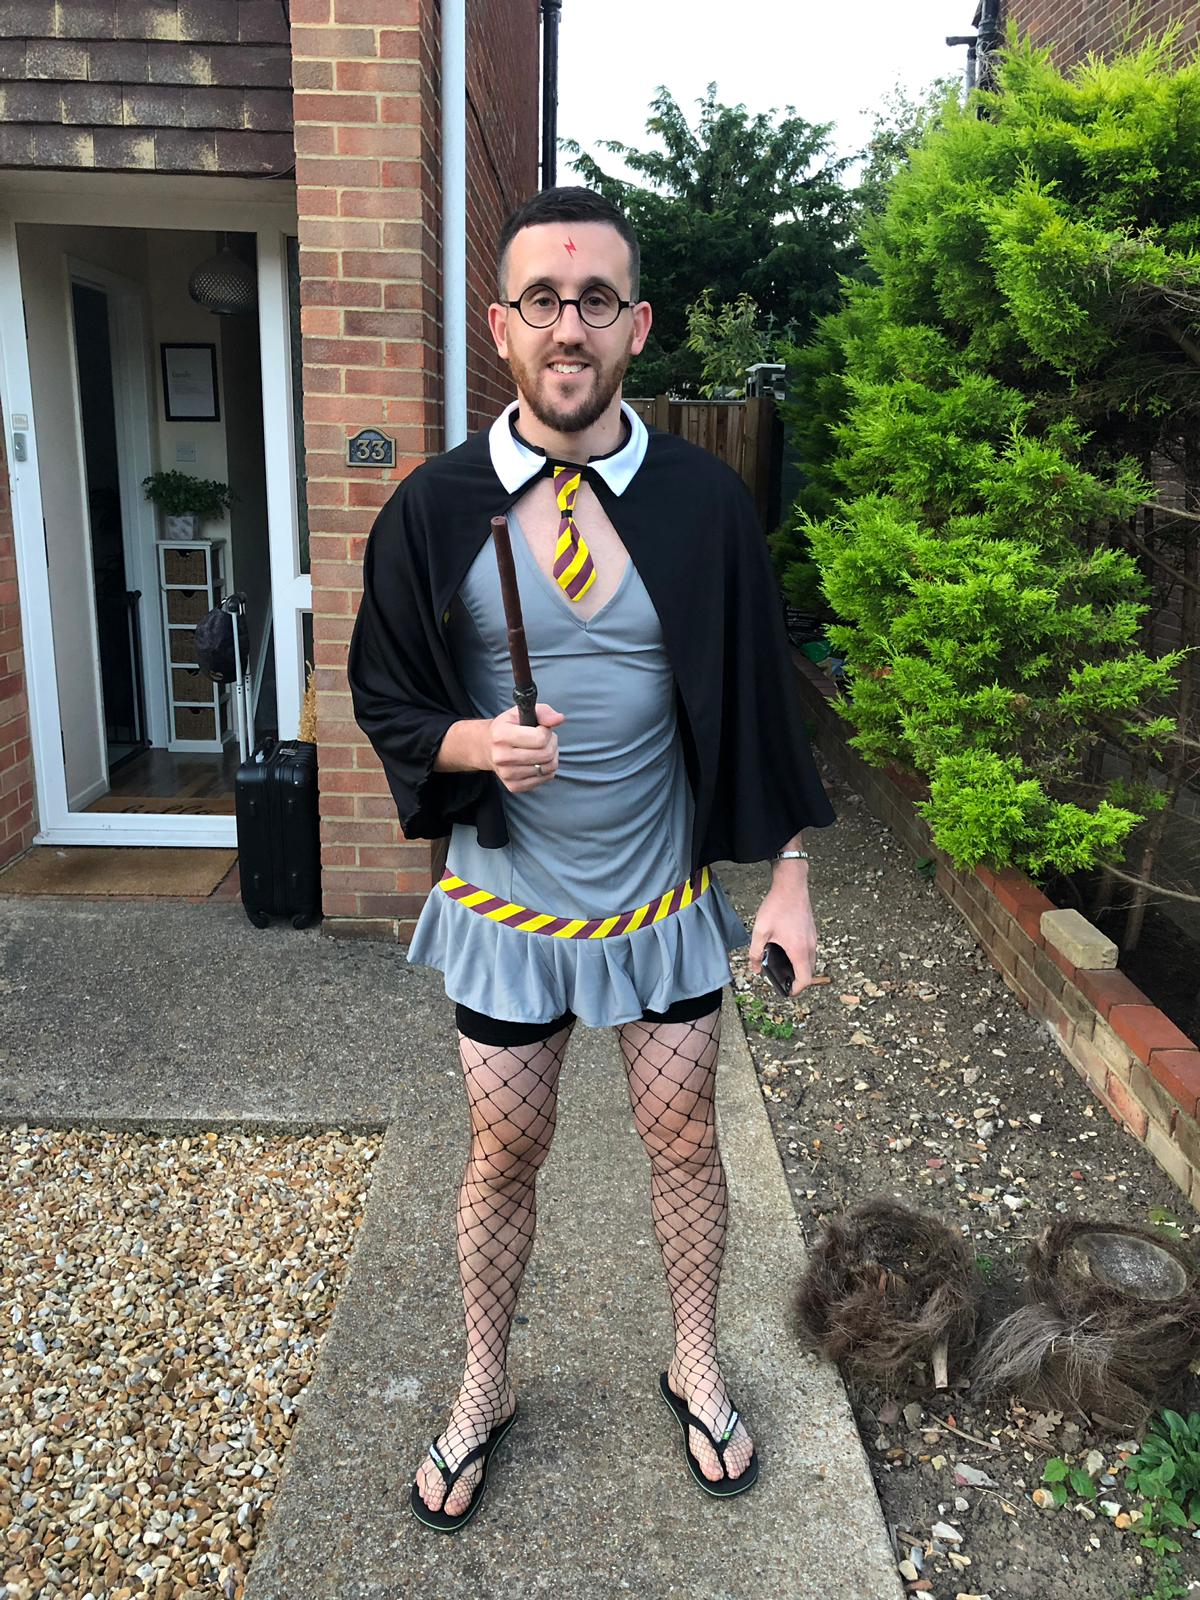 The group also dressed Liam up as Harry Potter. Credit: LADbible